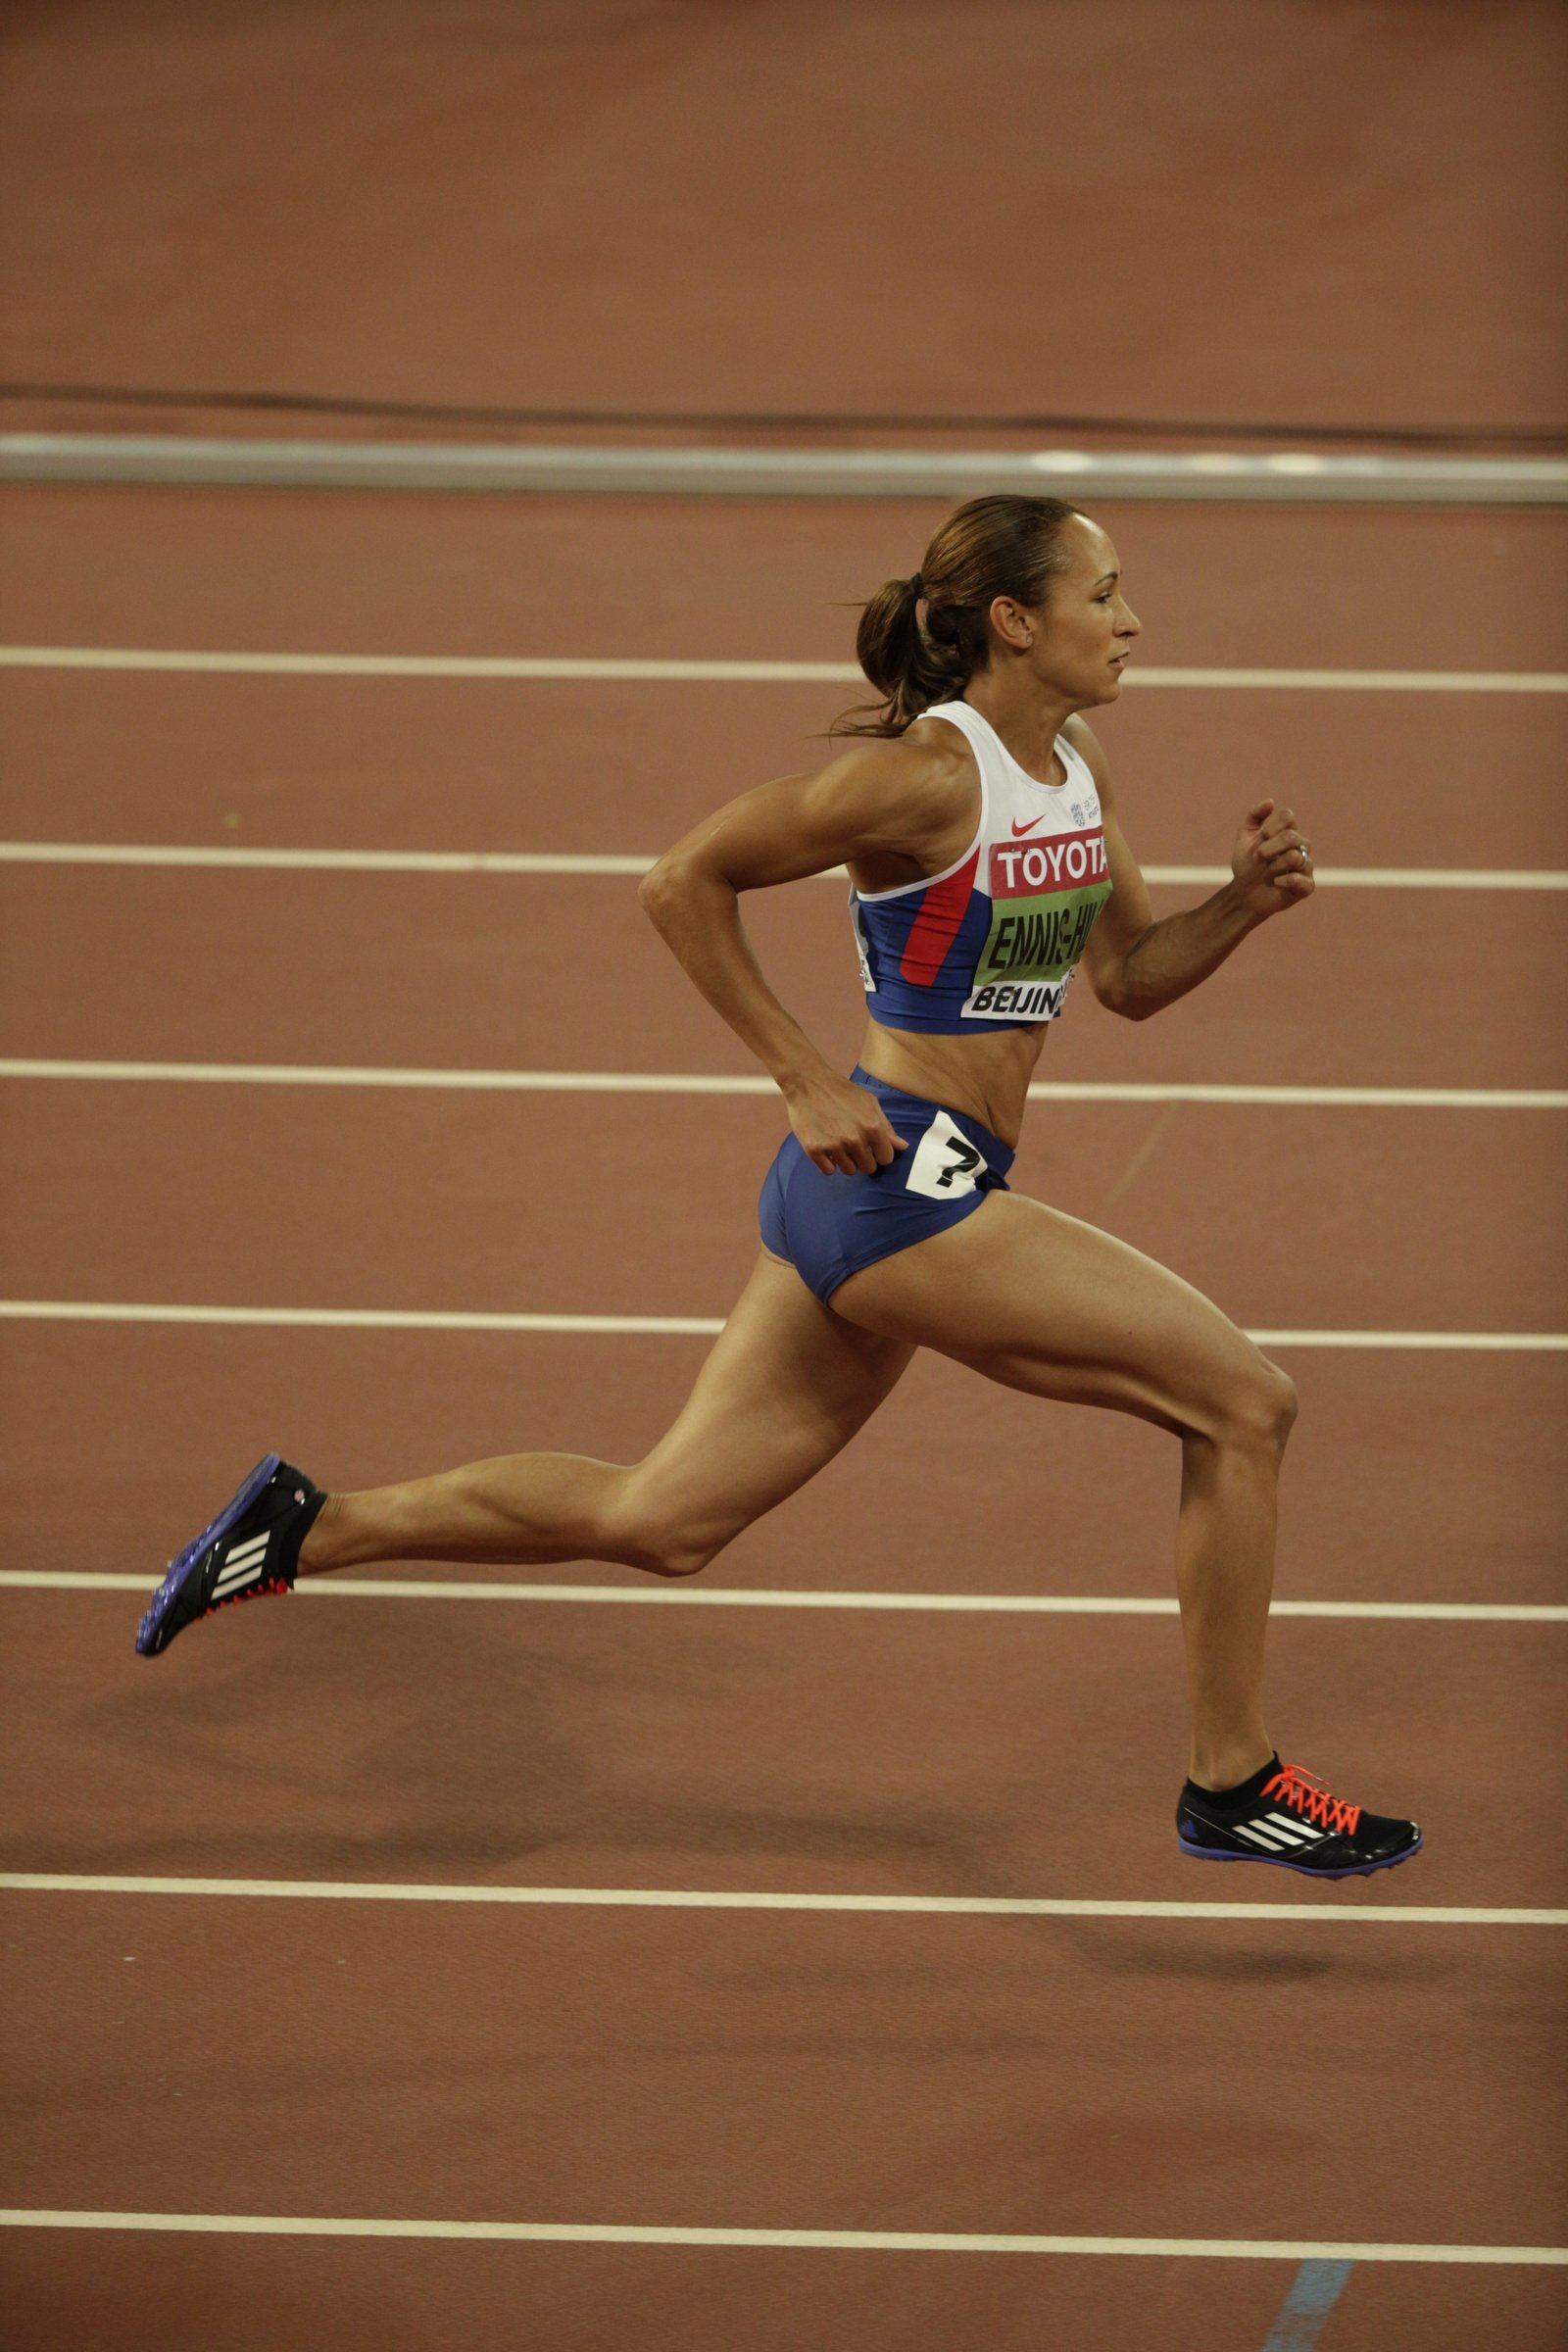 13 months after giving birth to a son, Olympic champion Jessica Ennis-Hill wins gold in the women's heptathlon.